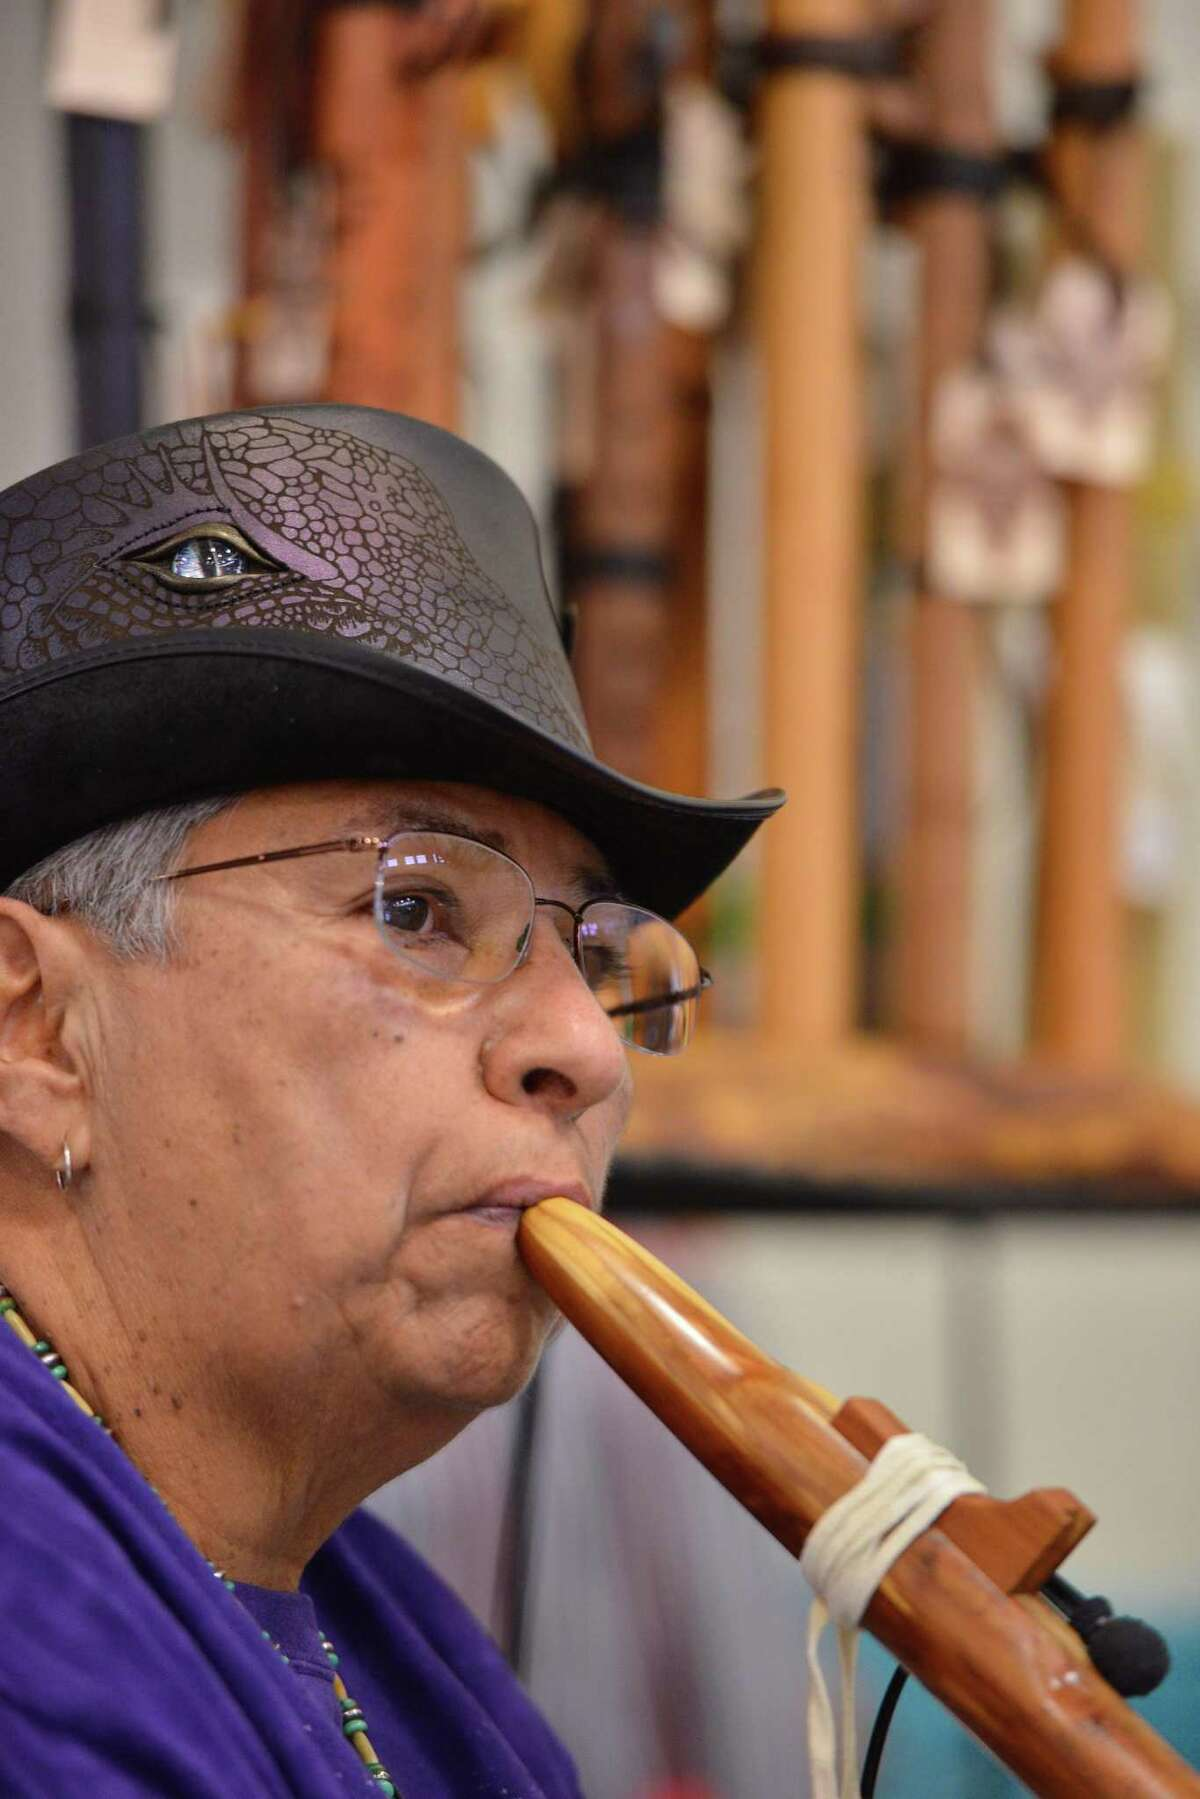 Virgie Raven Hawk, plays a native American flute during the Celebrations of Traditions Pow Wow at the Woodlawn Gym Saturday.The pow wow, an official Fiesta event, celebrates tribal traditions, culture, and opportunity.